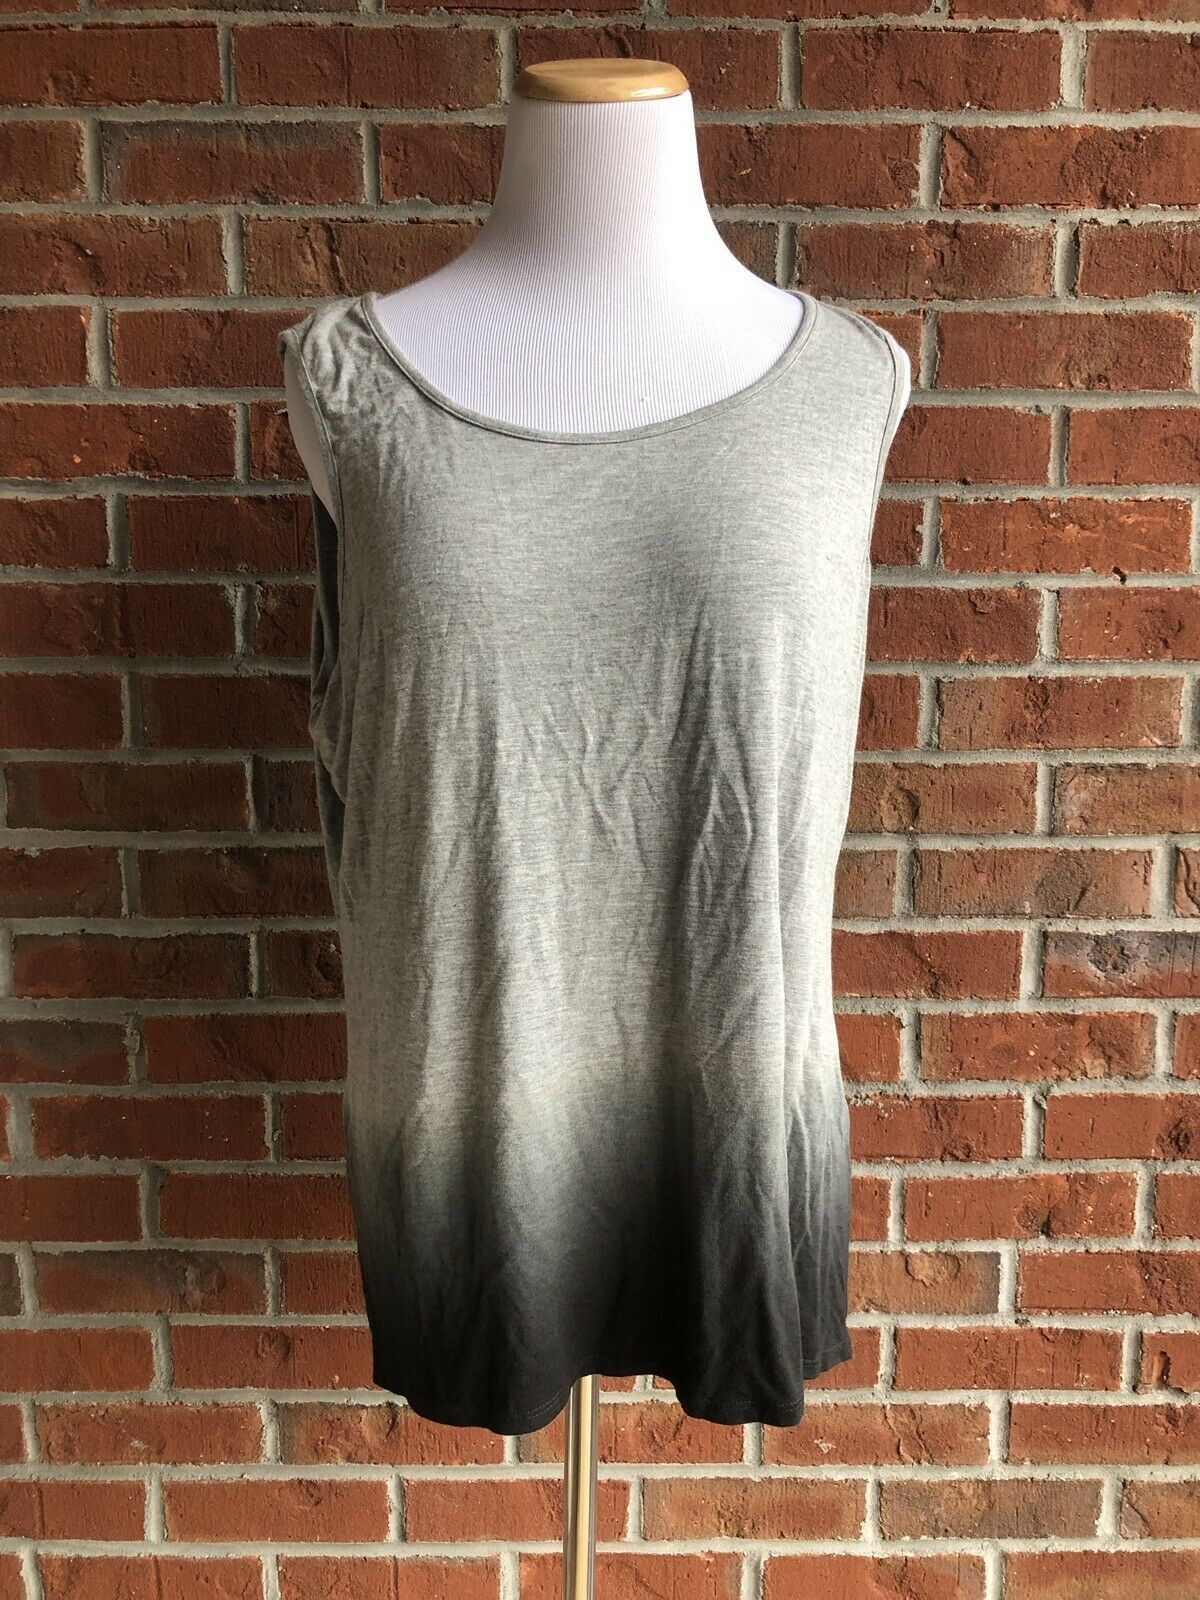 Primary image for Sunday Gray Ombré Tank - Size L